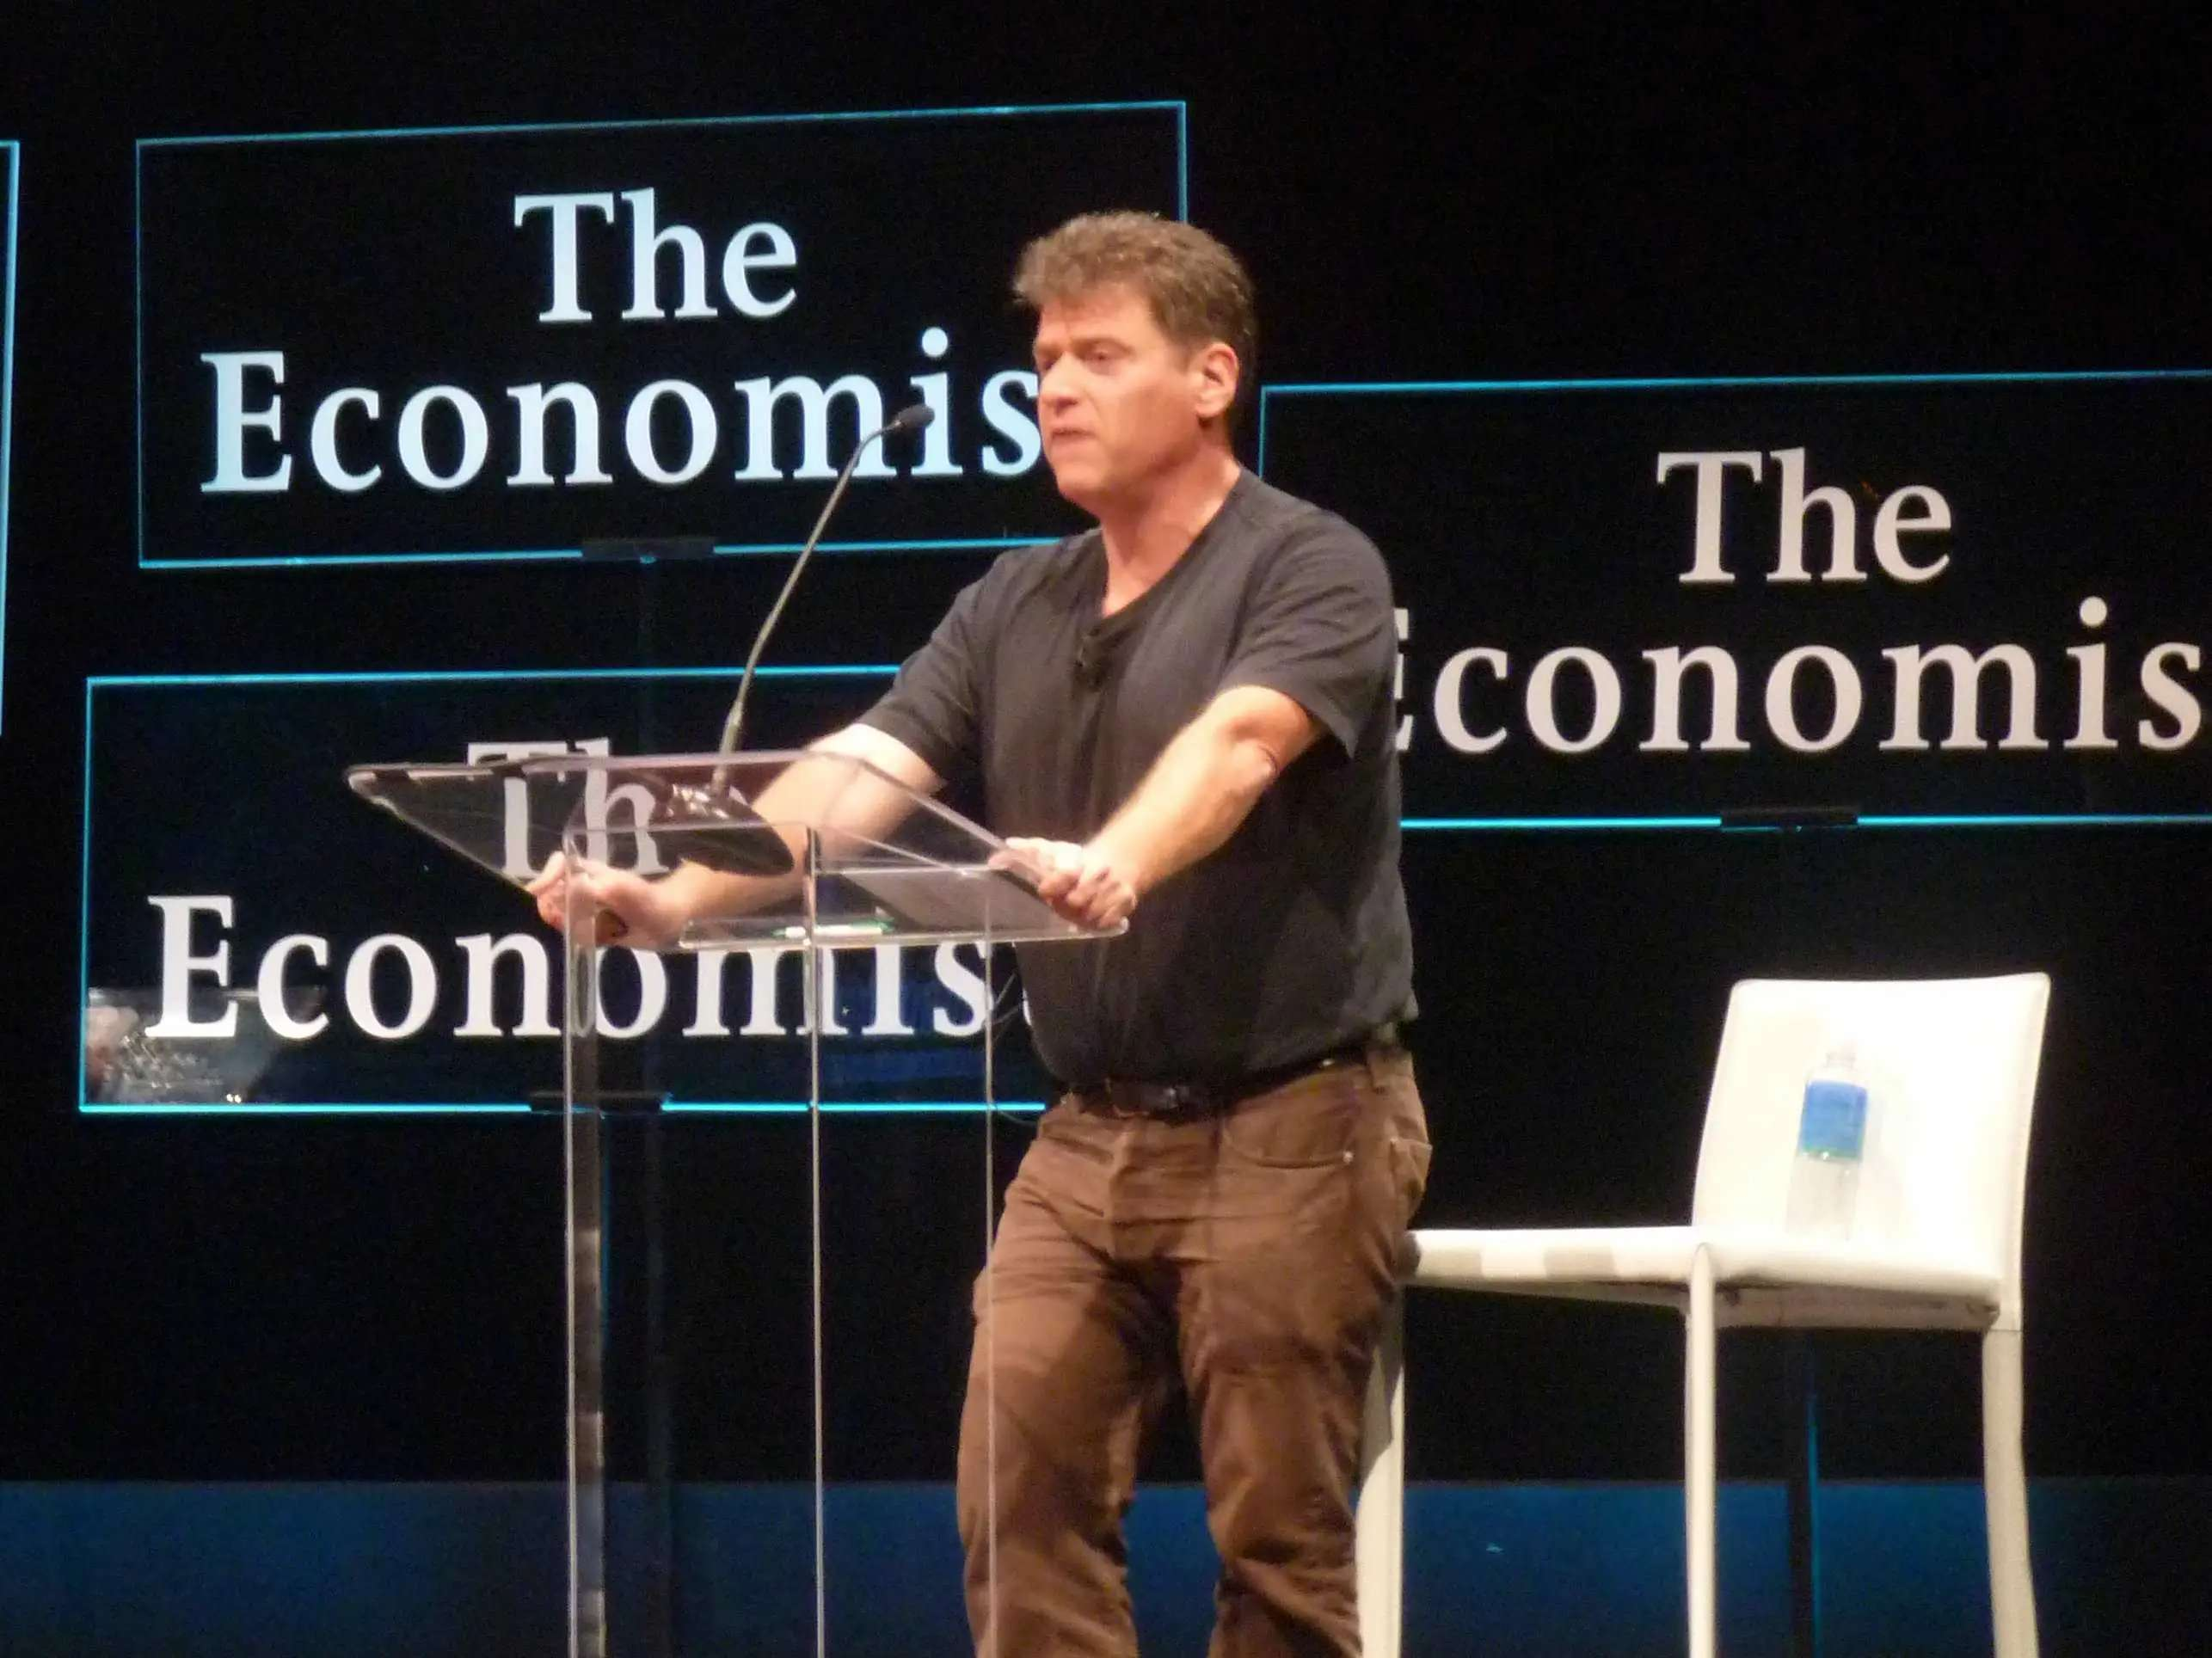 Andrew Keen, one of the most prominent commentators on Internet culture during the Web 2.0 movement, thought that the economic crisis of 2008 would have a huge impact on how we use the Internet...